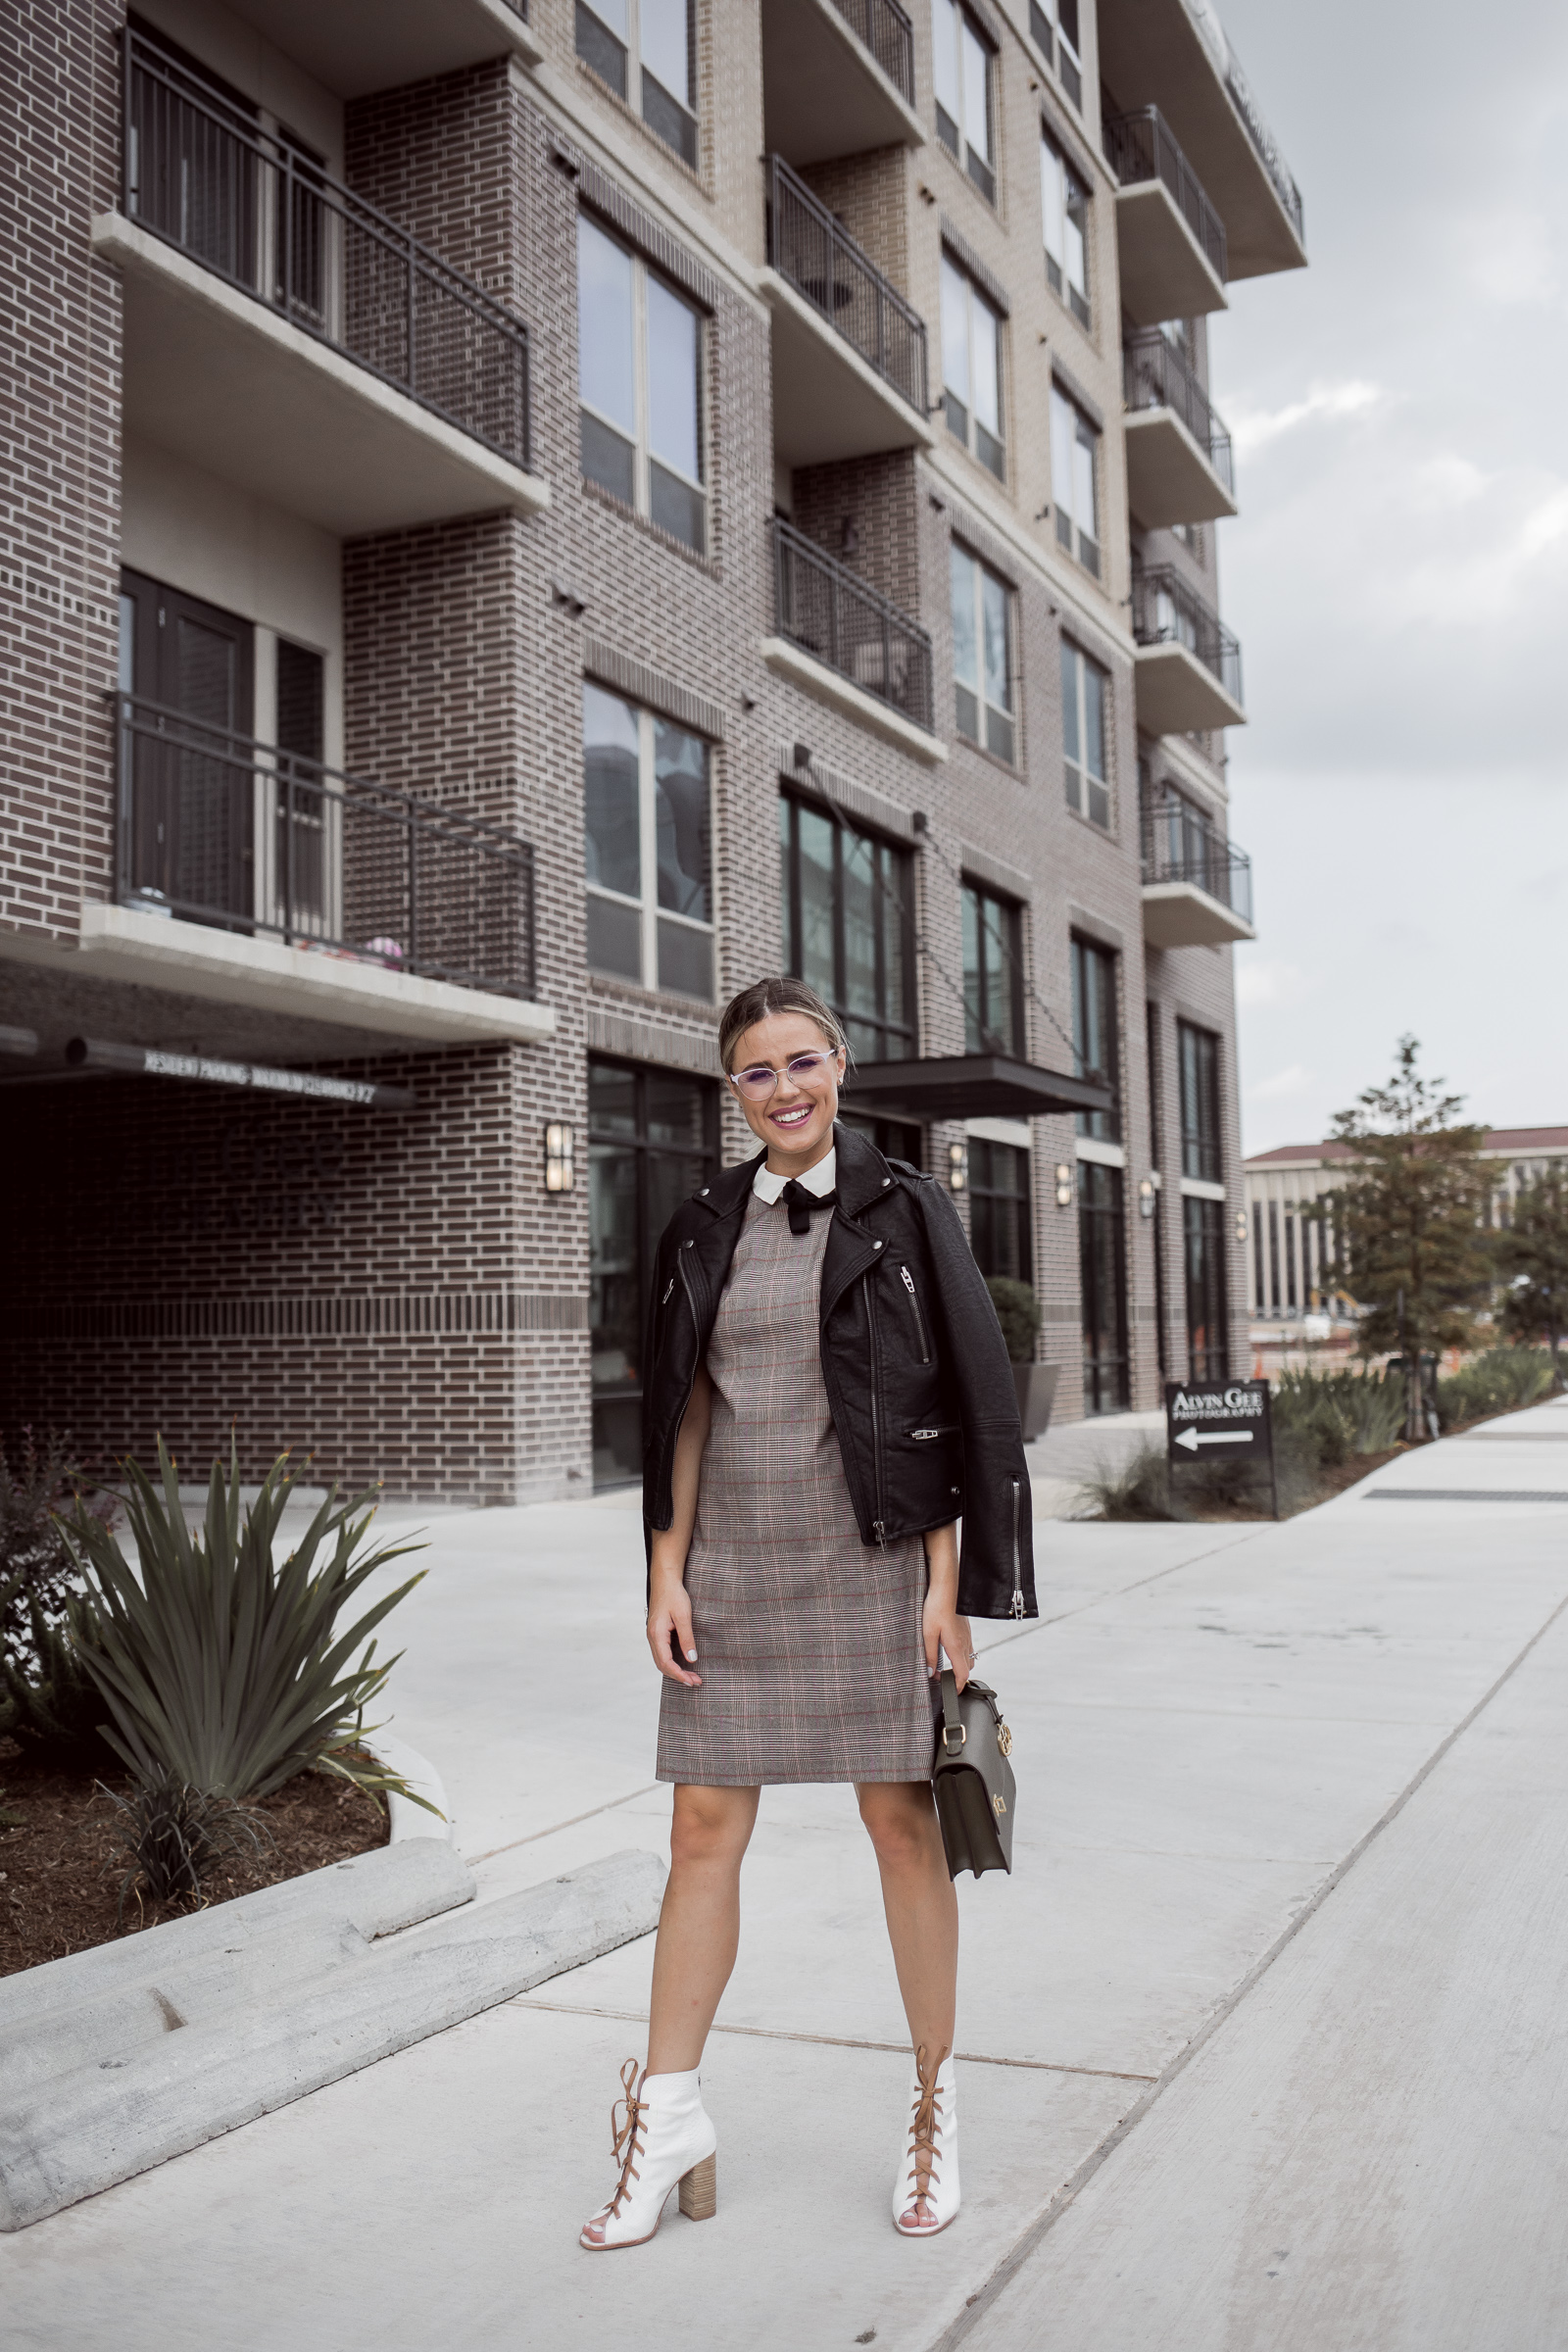 Houston fashion blogger Uptown with Elly Brown wears white lace up ankle boots for fall